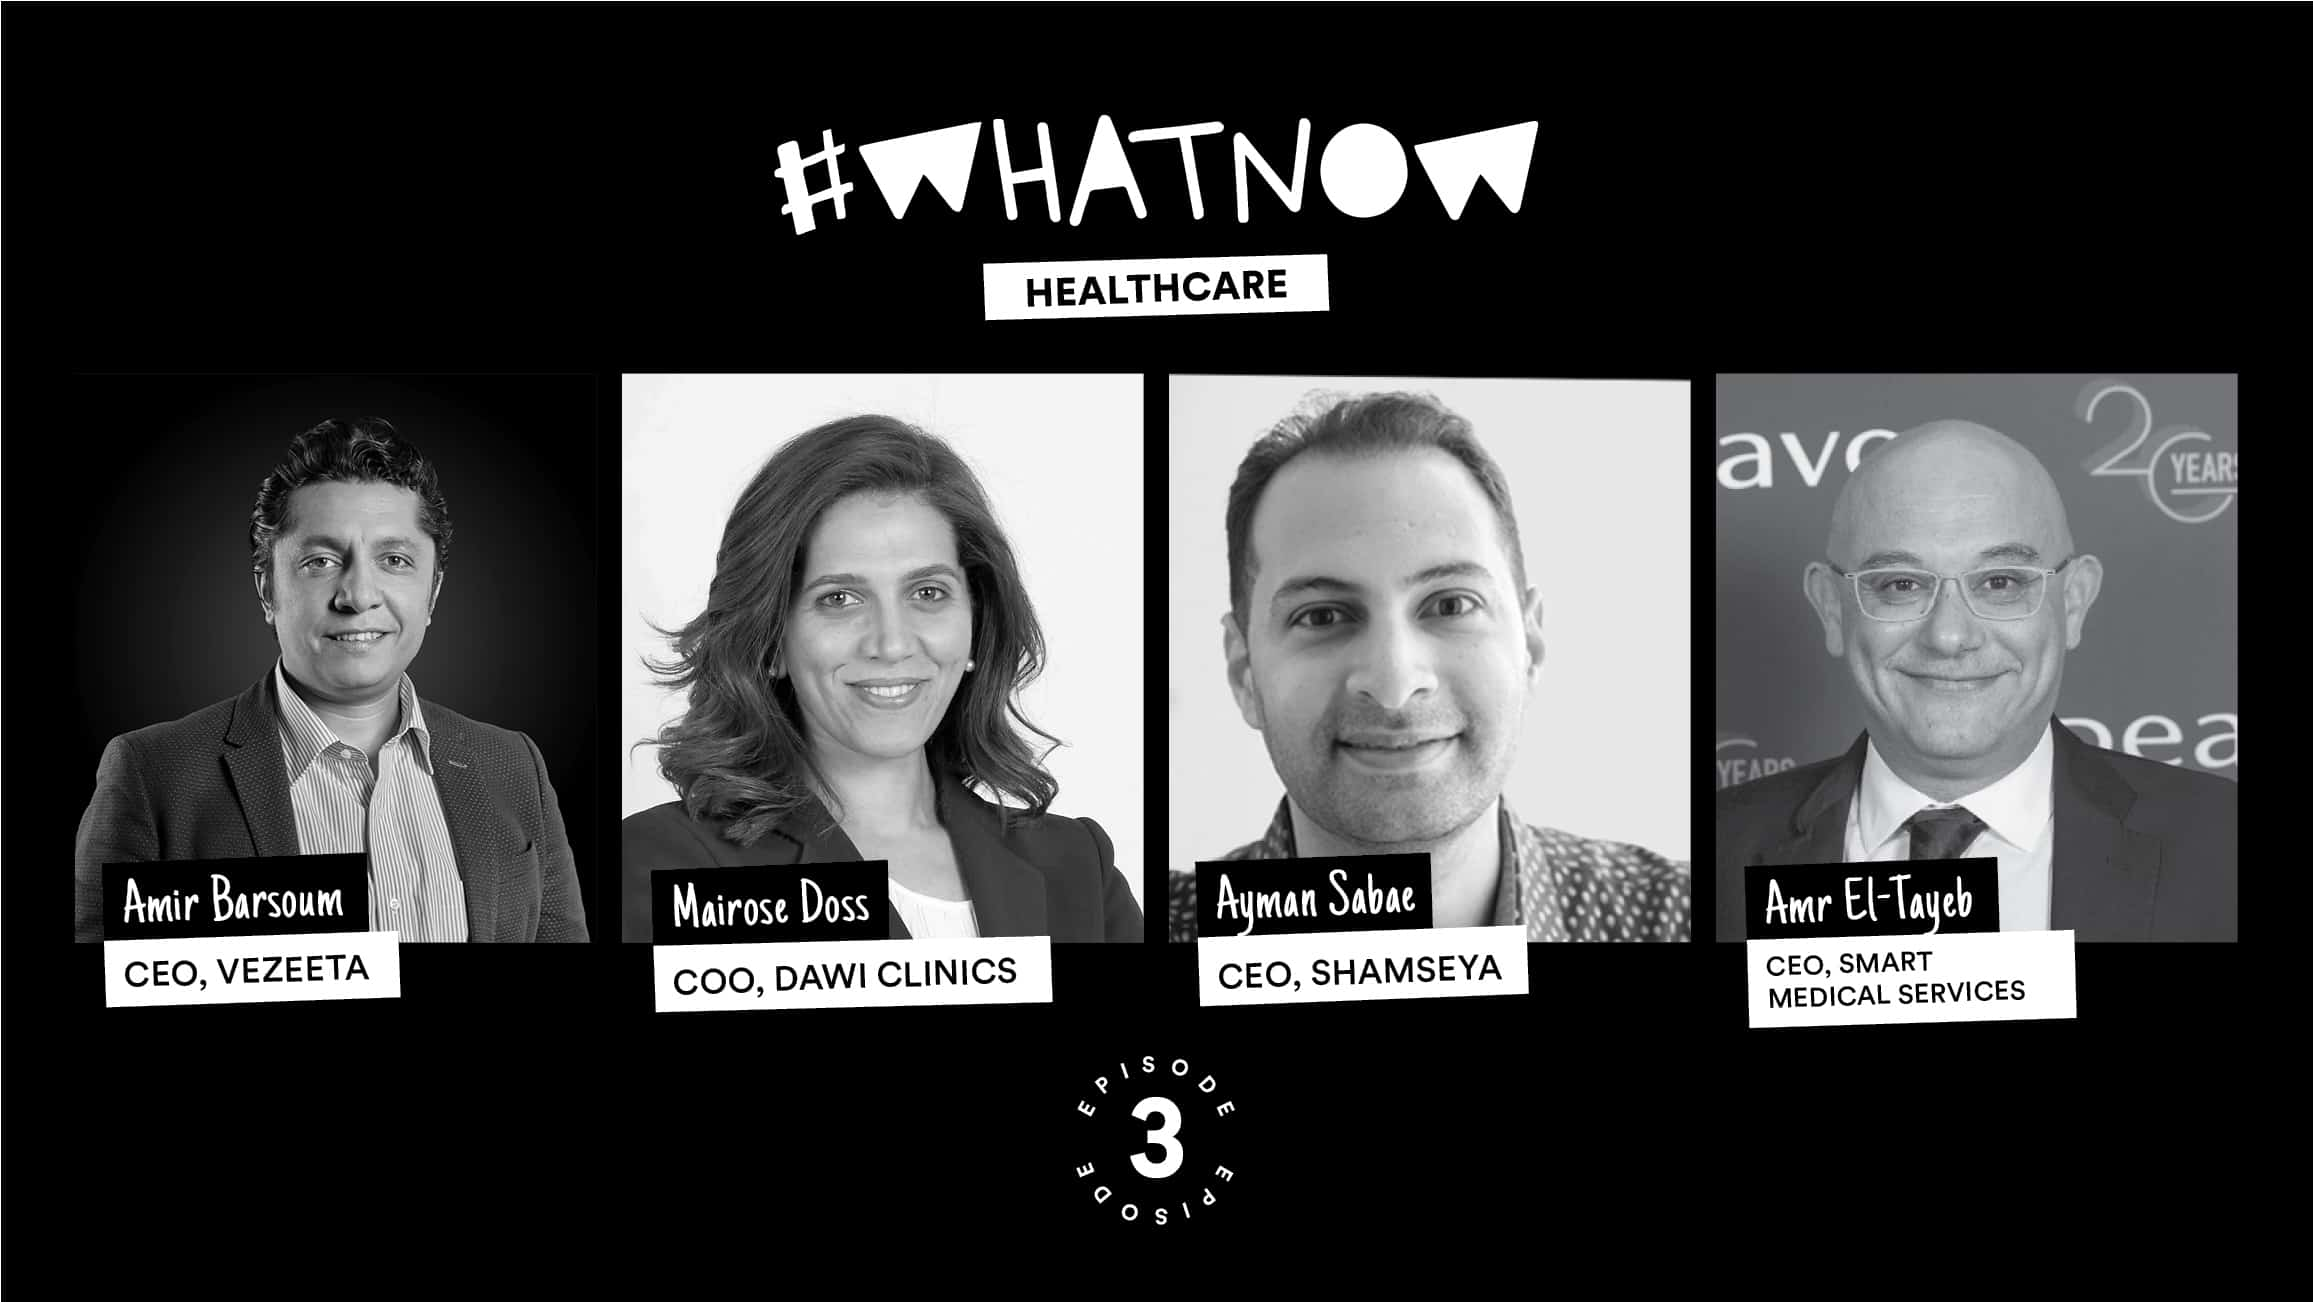 #WhatNow: What did healthcare learn from the pandemic?